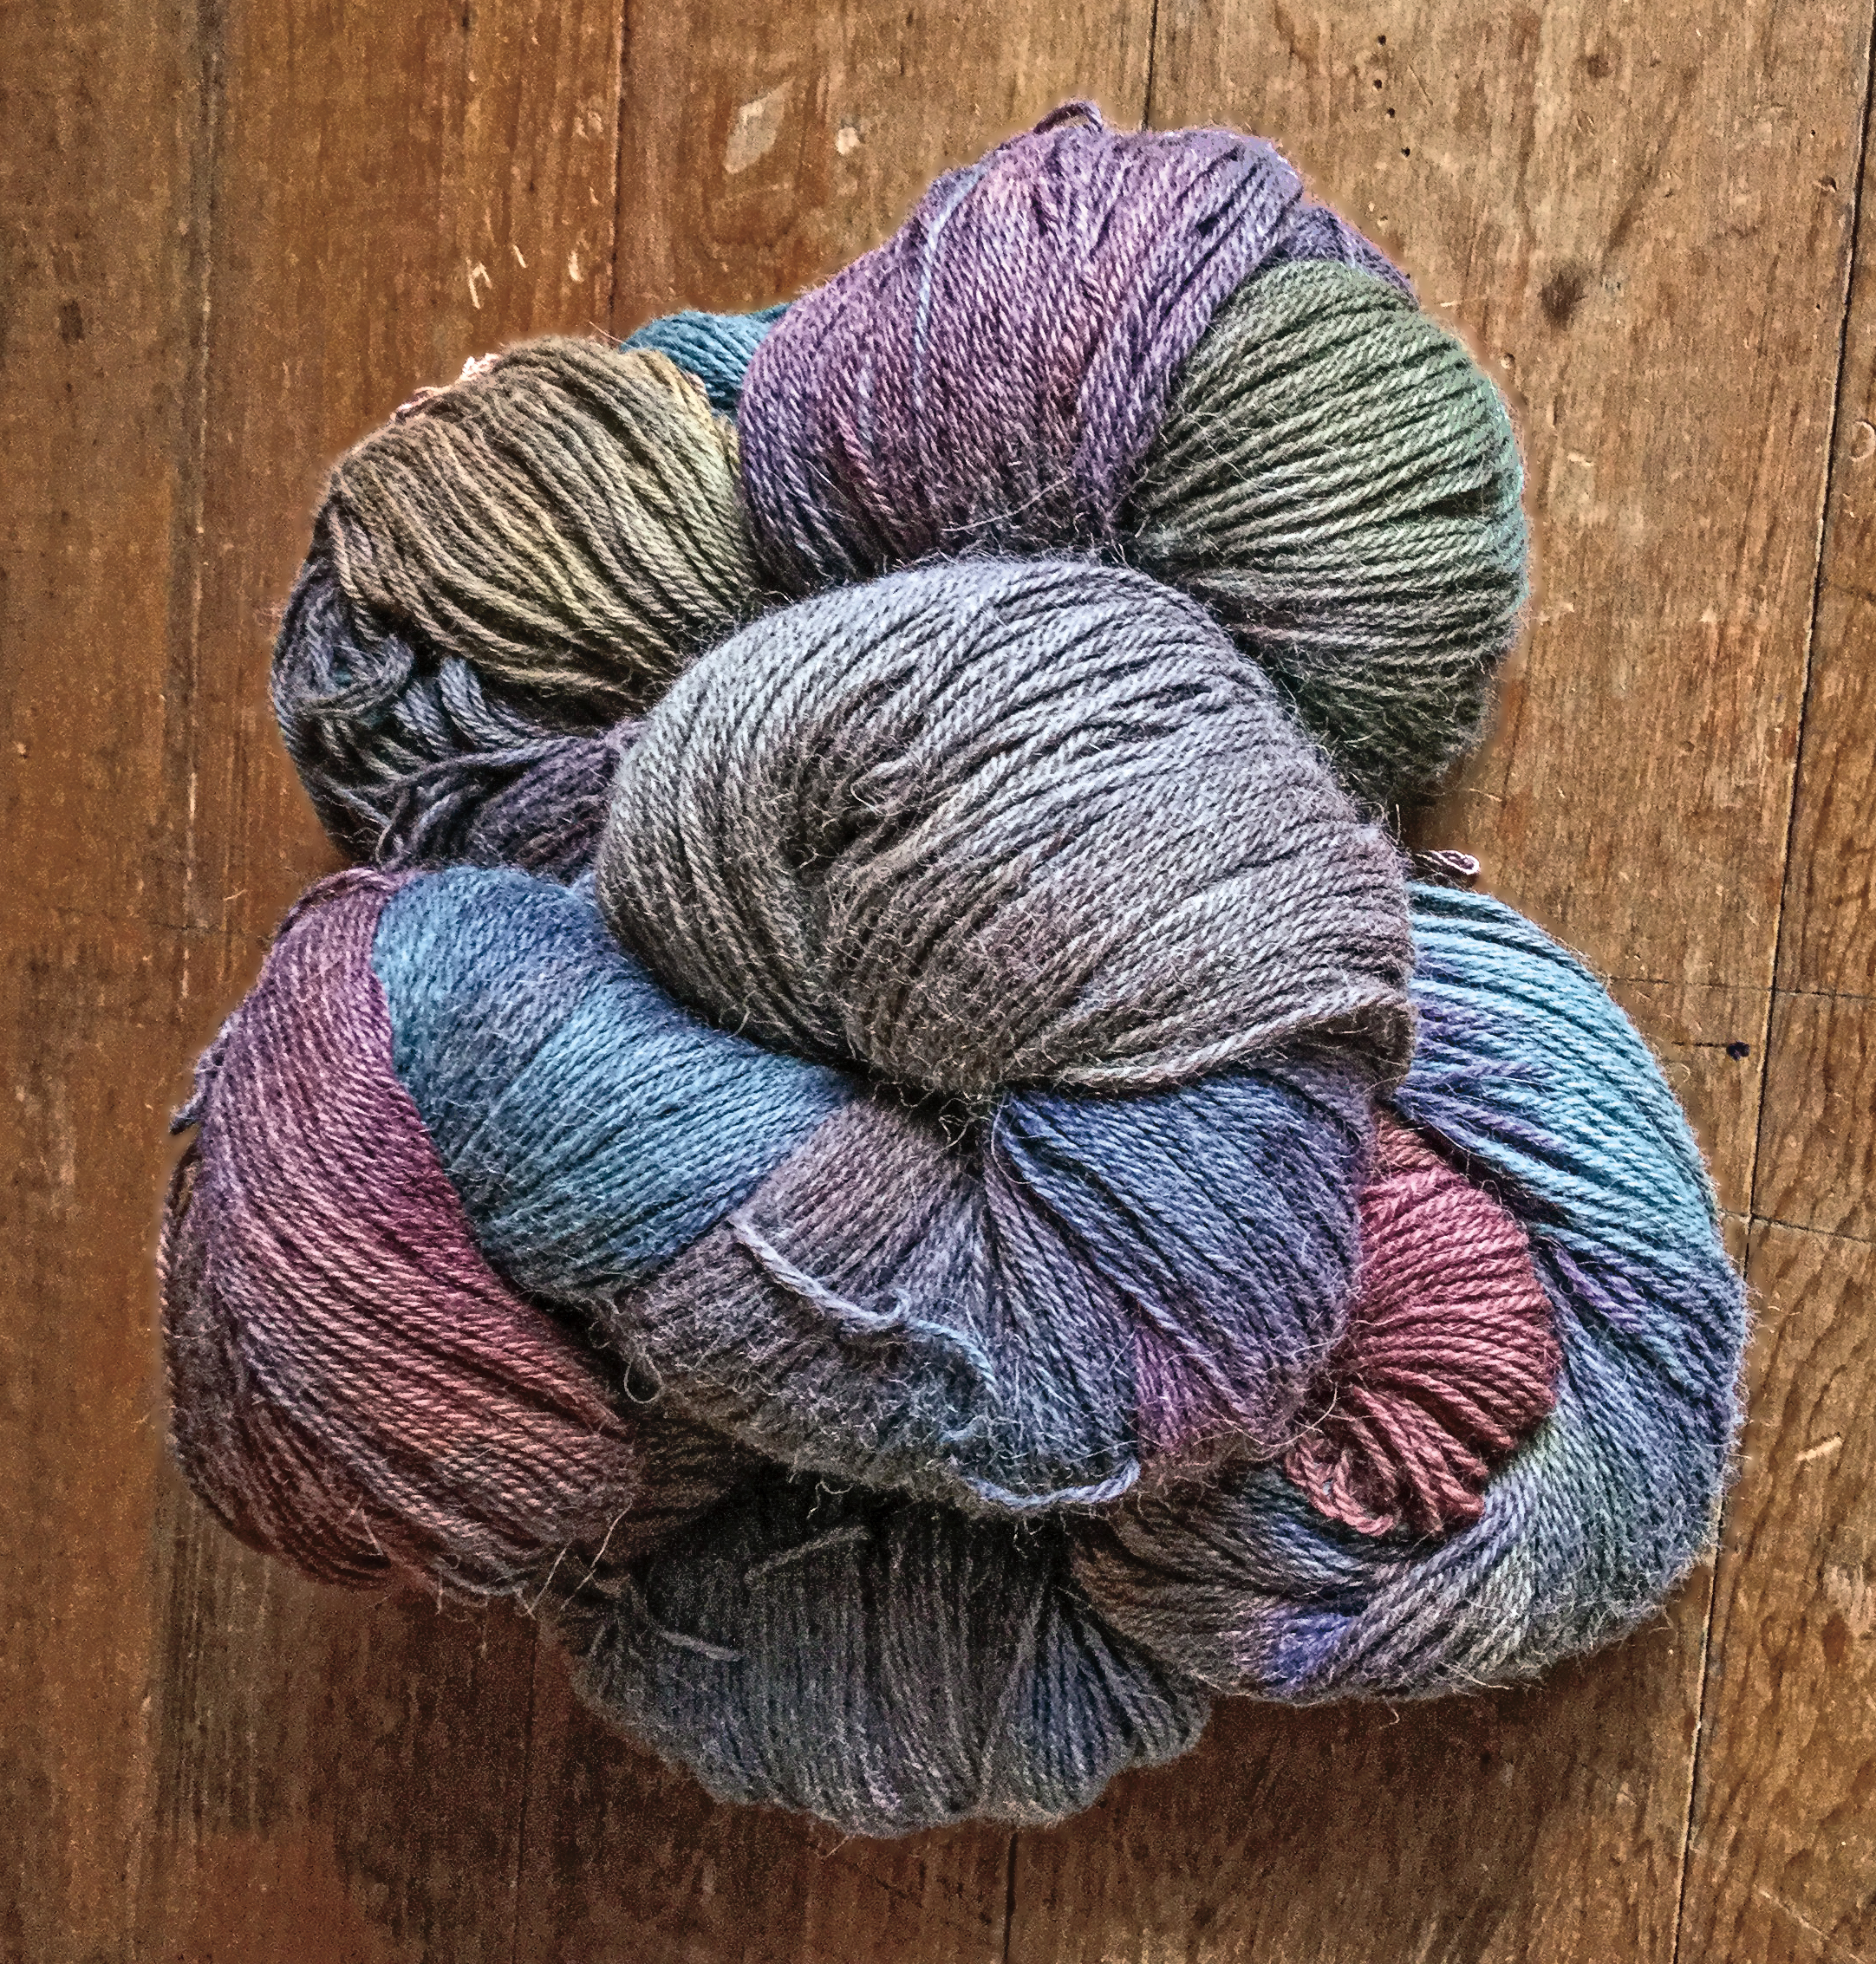 IMG_0315_multicolored-yarn.jpg